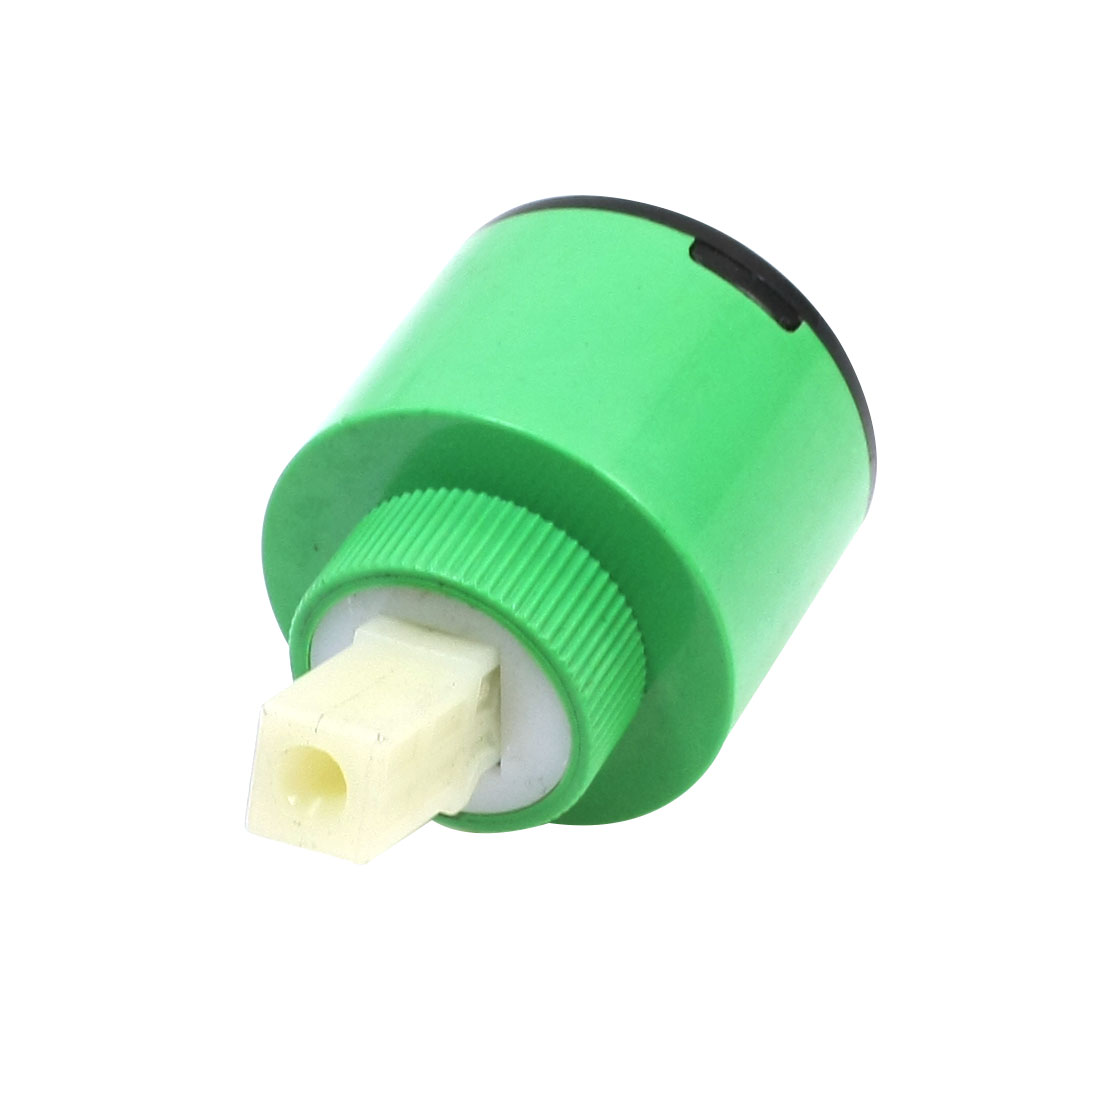 Green Plastic Housing 35mm Faucet Mixer Tap Ceramic Cartridge Valve